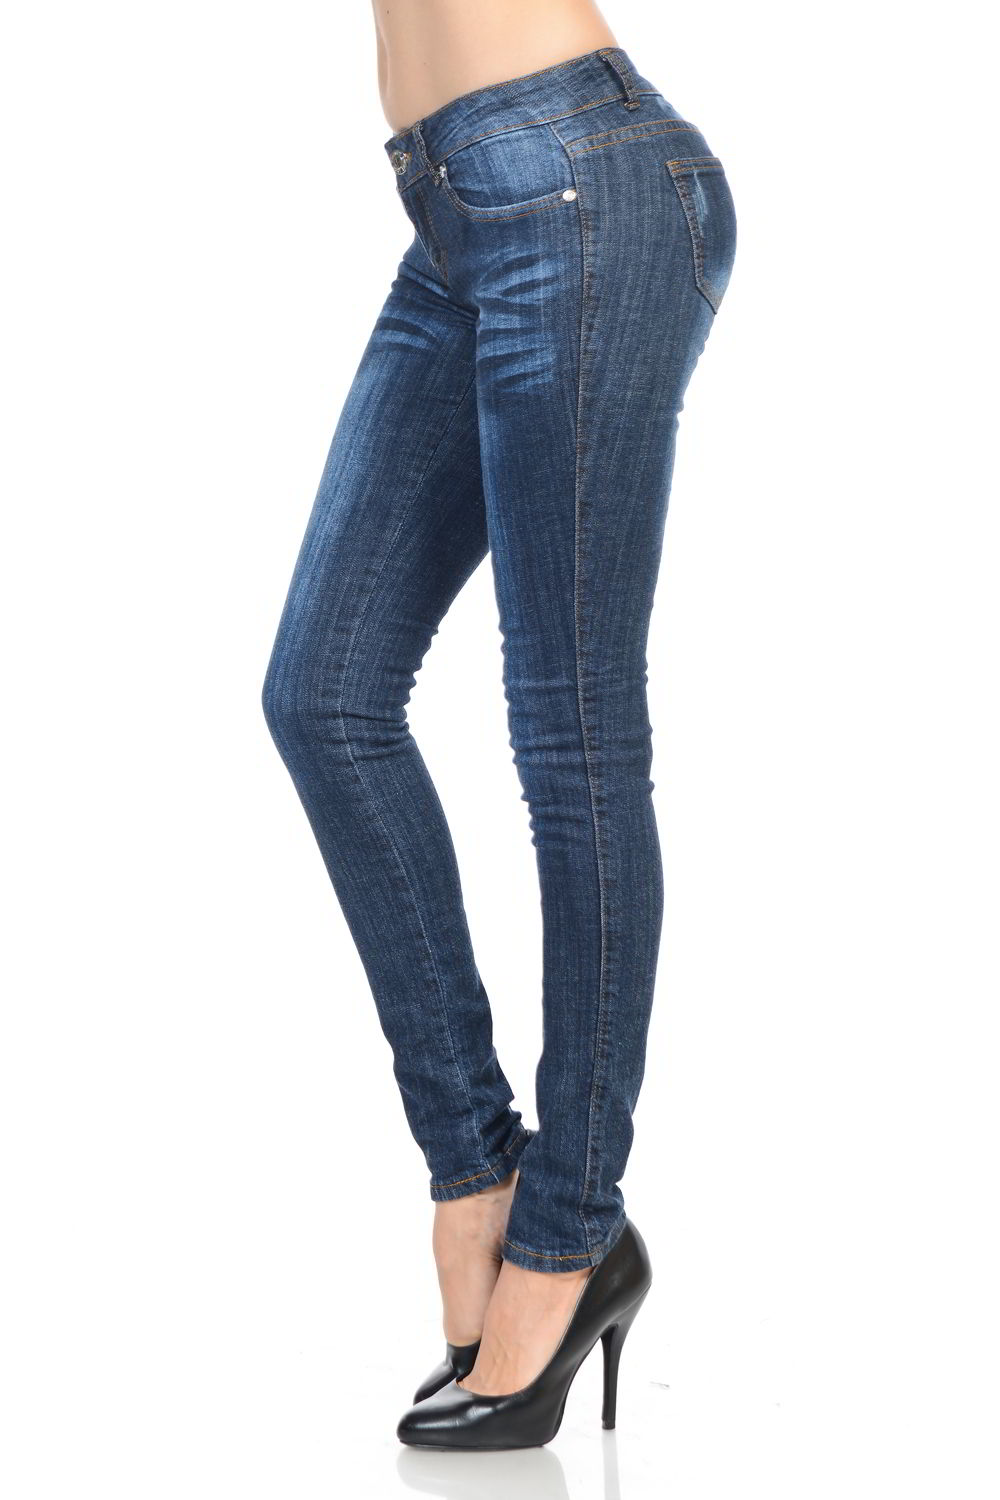 Sweet Look Premium Women's Jeans - WG0112C